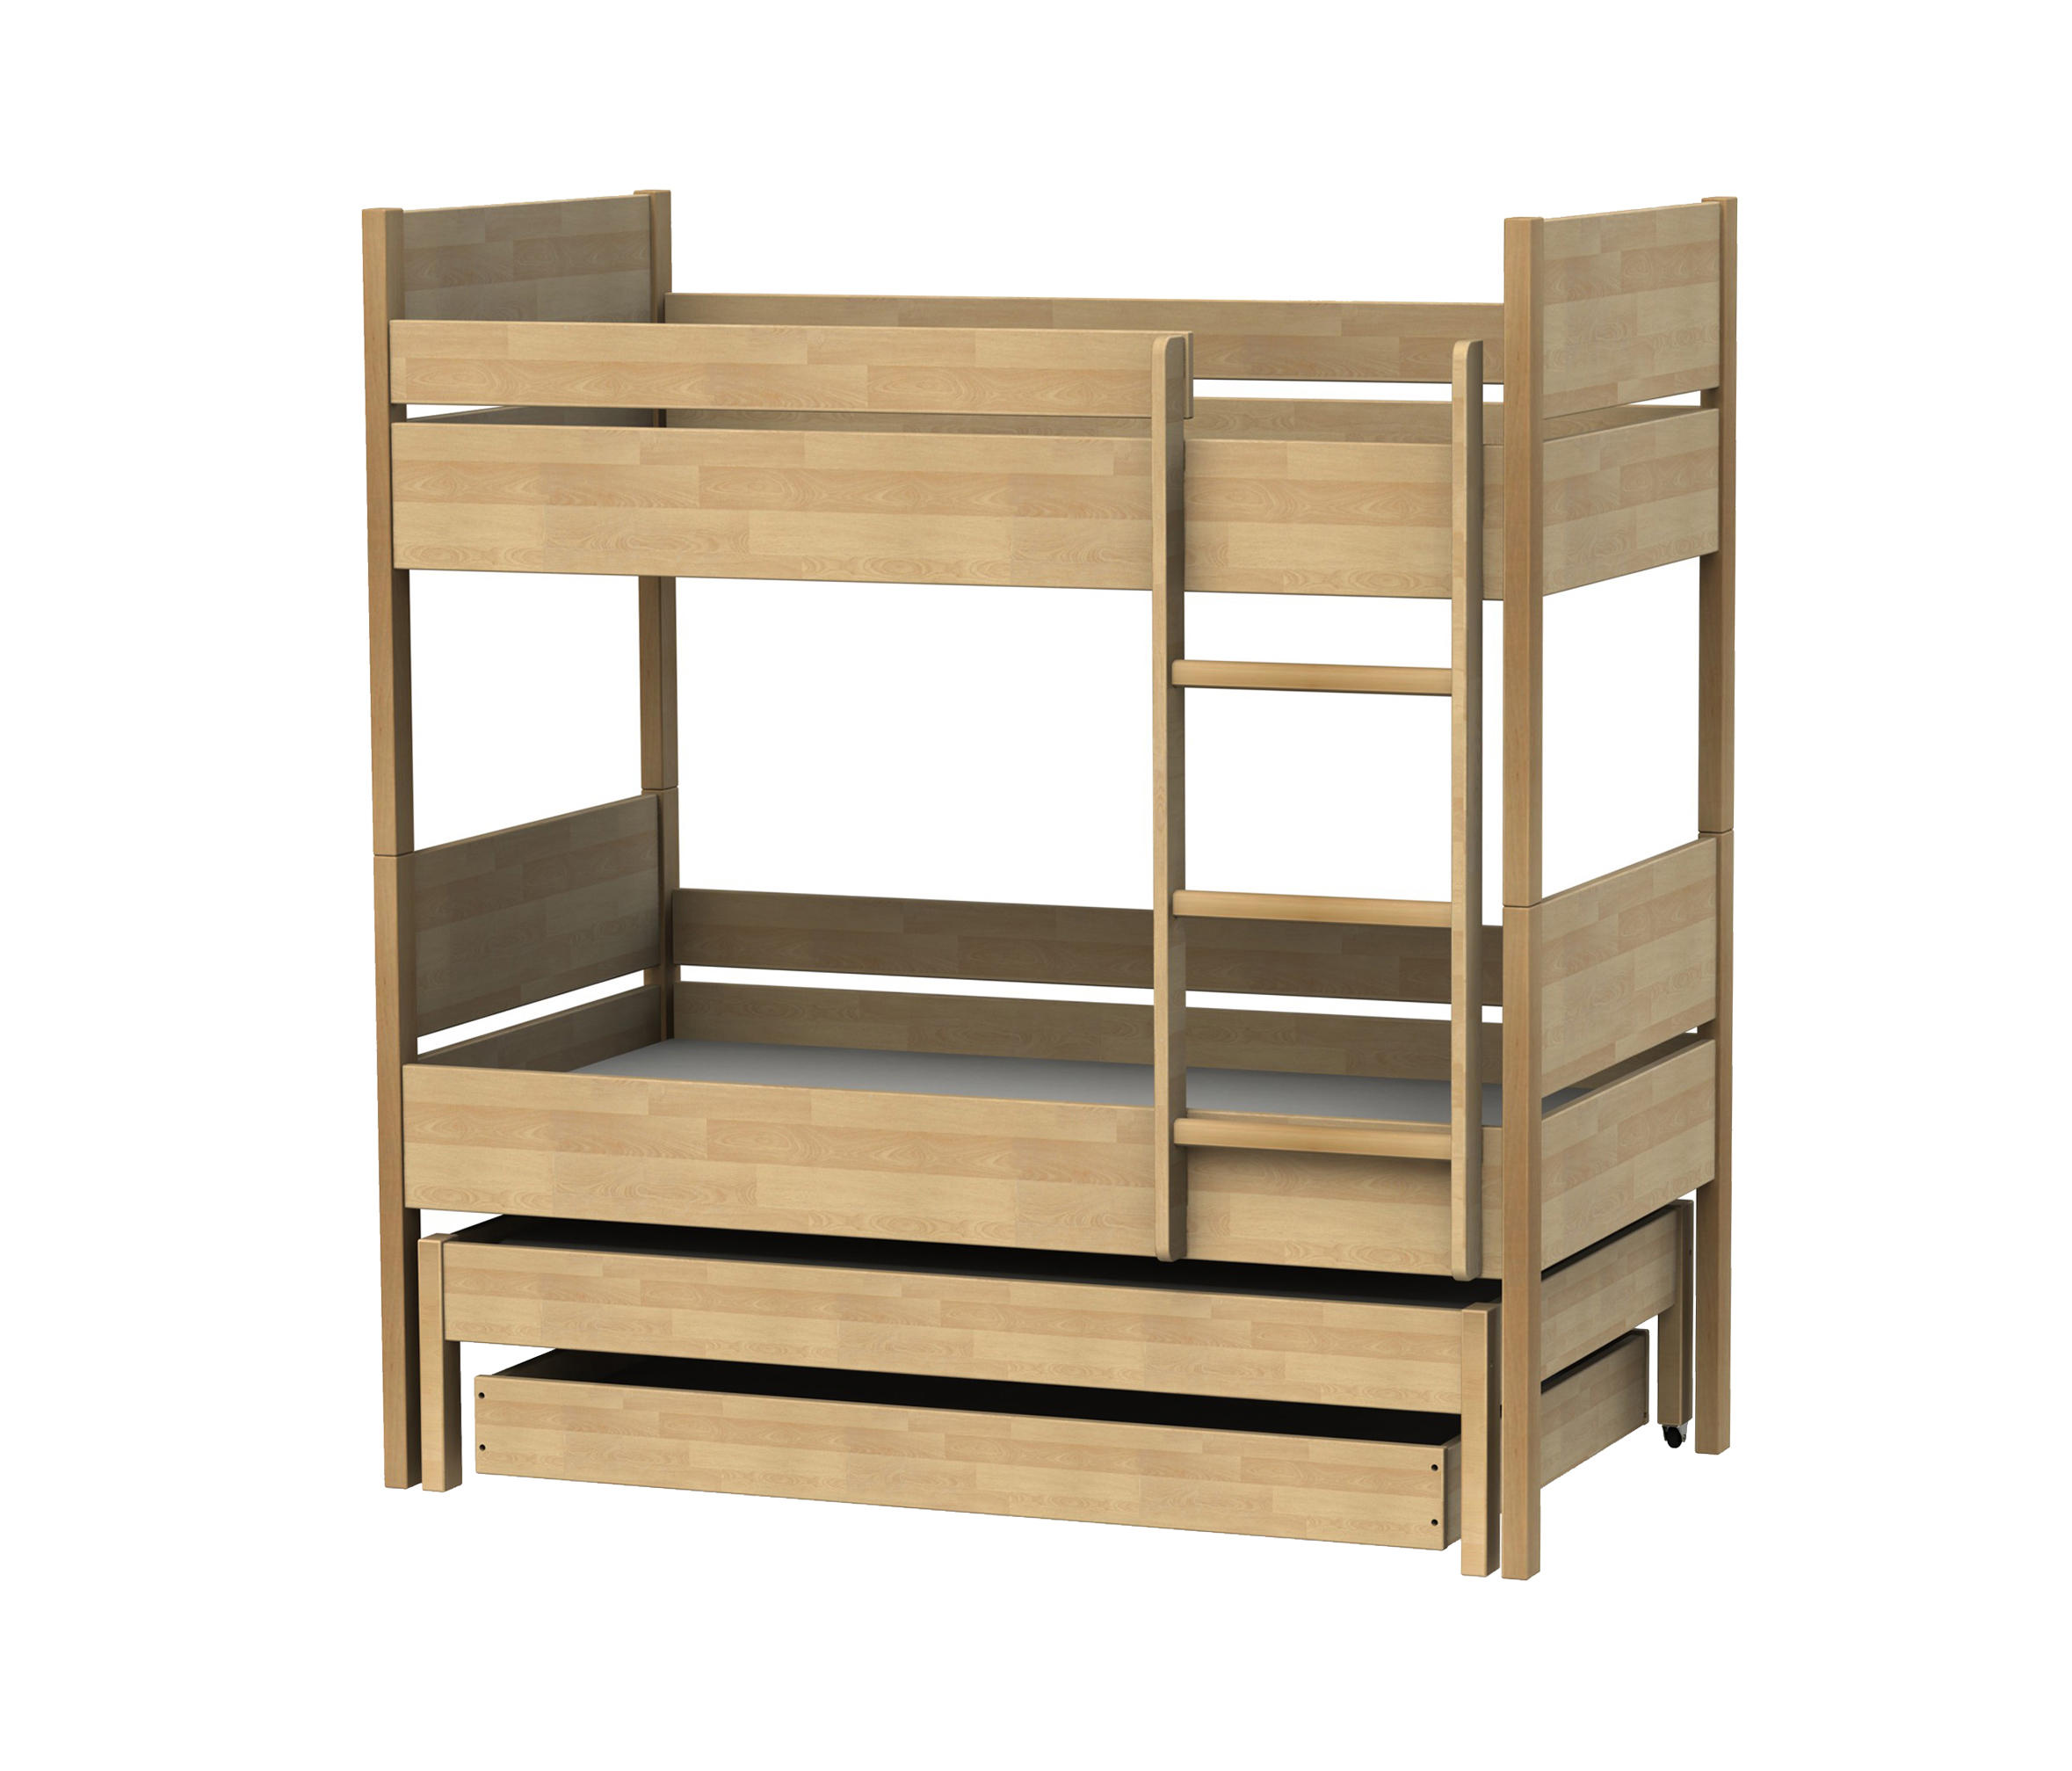 Bed For Children Bunk Bed B502 B552 B505 B506 Kids Beds From